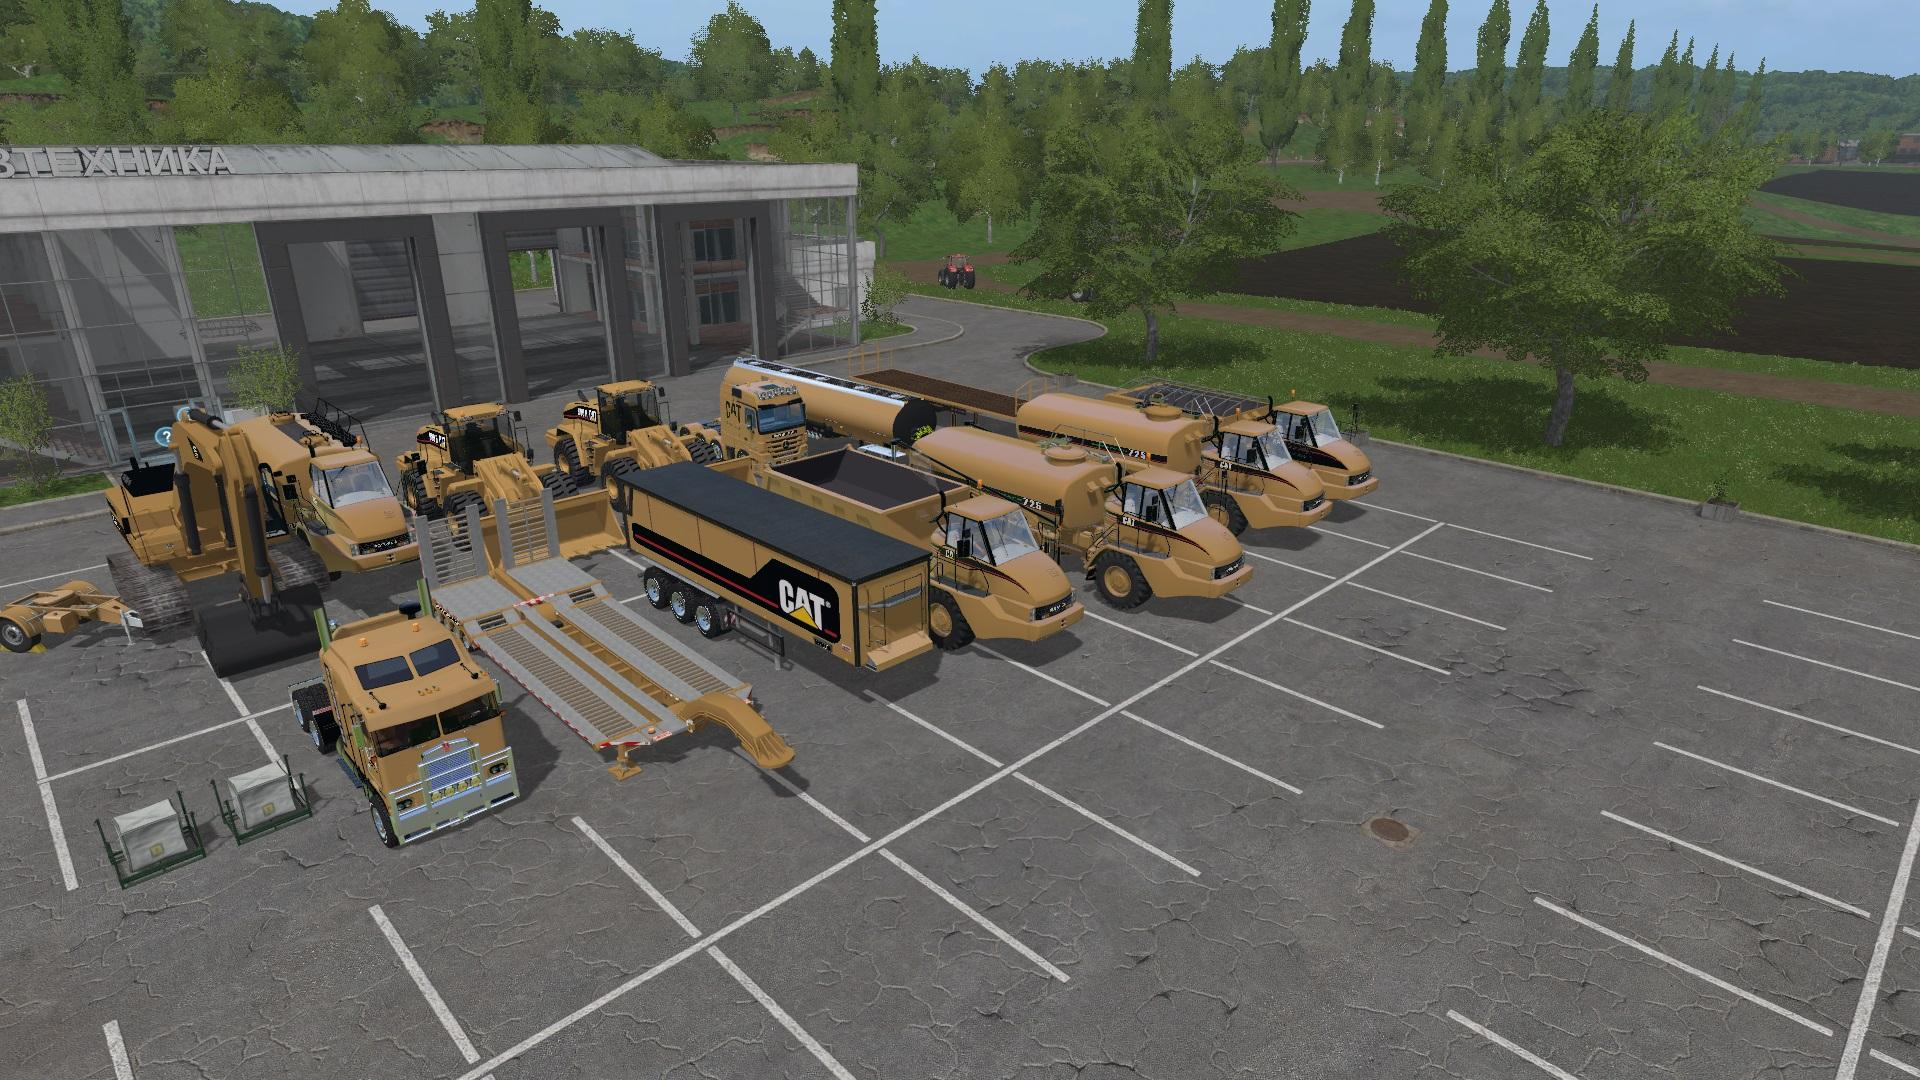 School bus2 also Lube Buddy Jr in addition kamazexport furthermore 699 Bus icon together with China Iso sinotruk 336hp howo water tank truck 12m3 20m3 tank capacity 6510043. on dump truck tank